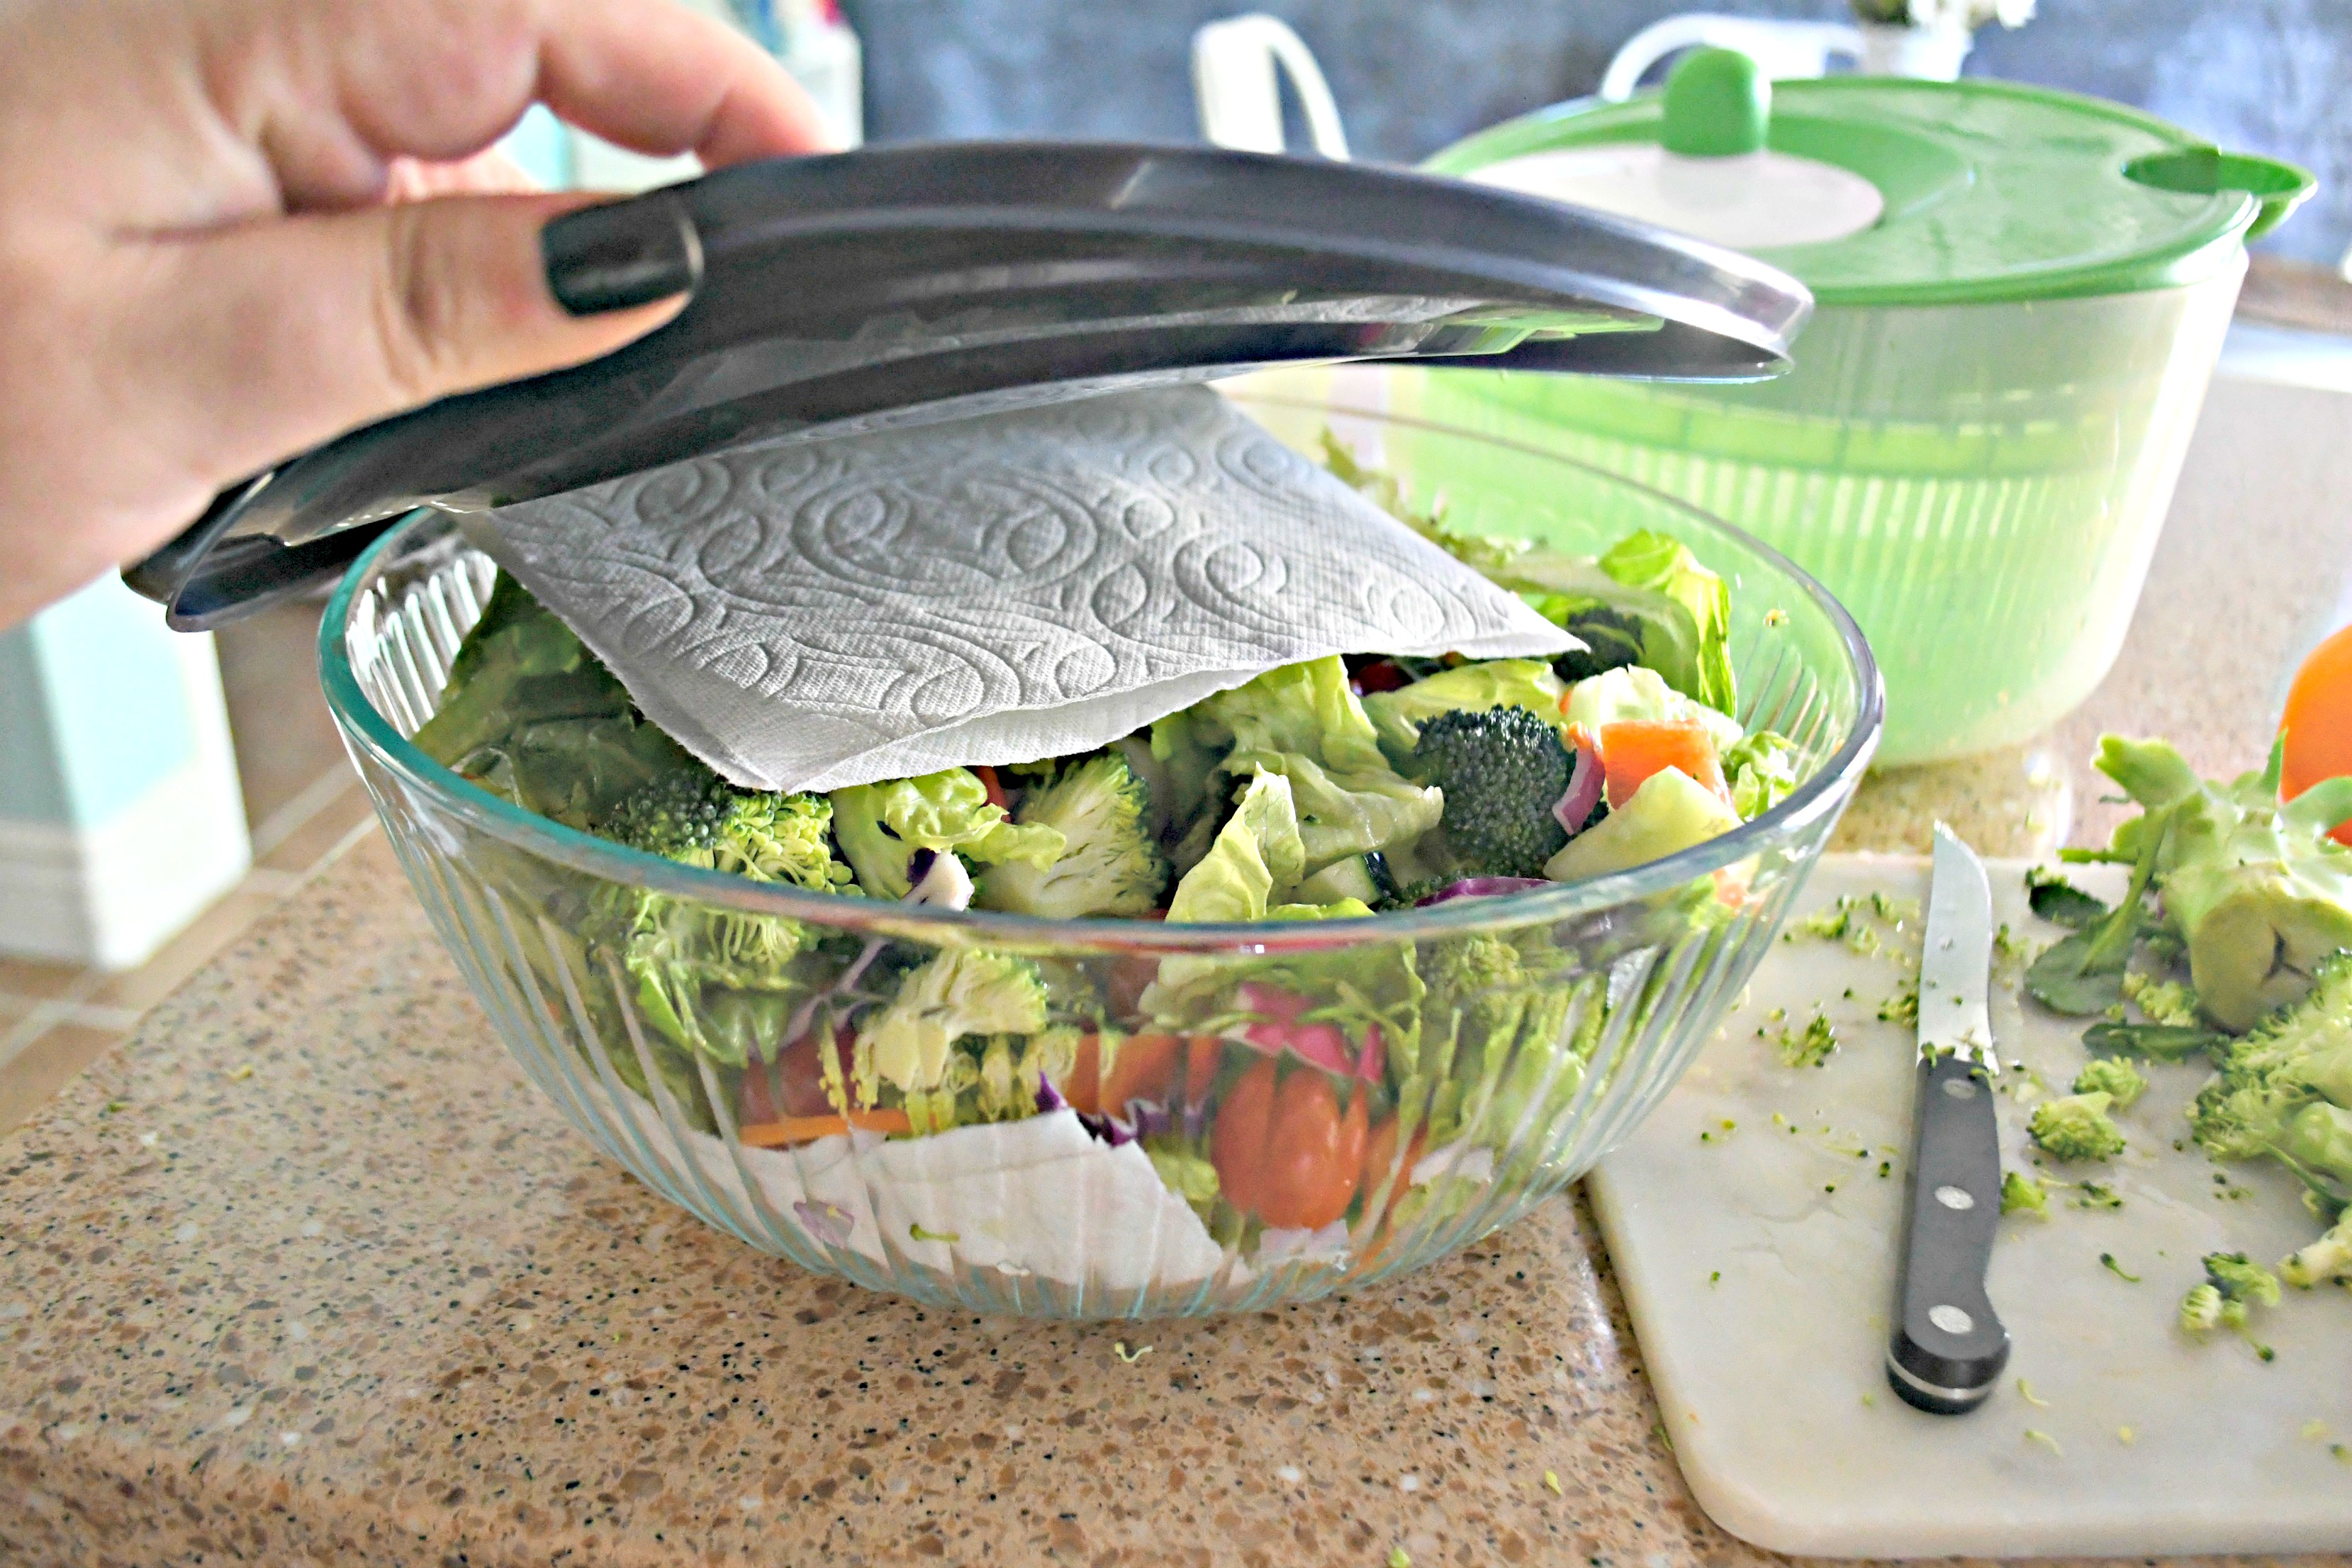 Storing my Weekly Sunday Salad Prep and my favorite dressing recipe in a glass storage container.